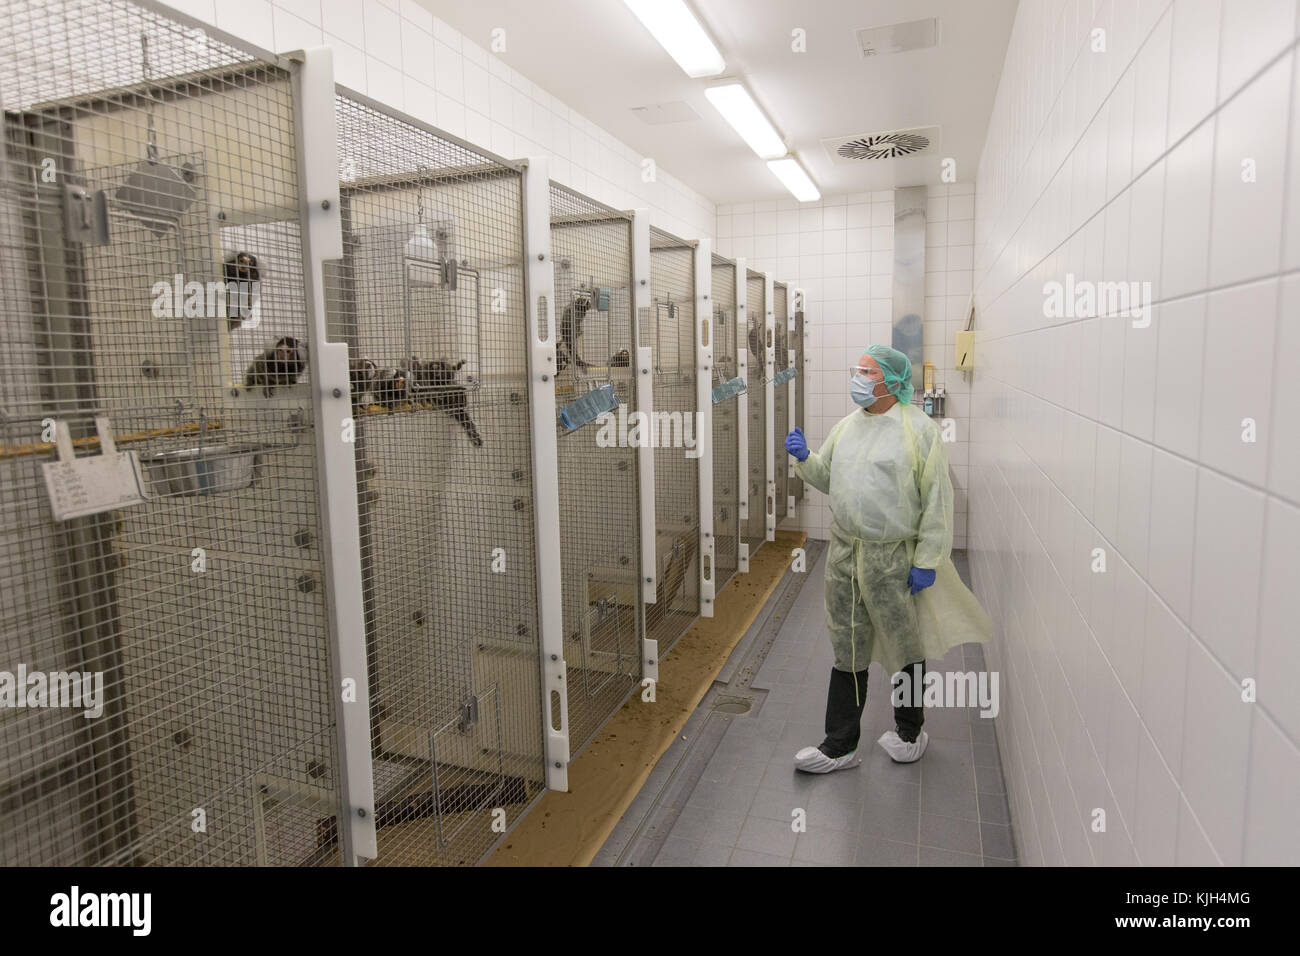 Muenster, Germany. 24th Nov, 2017. Prof. Dr. Stefan Schlatt from the Medical Faculty stands in front of a cage with - Stock Image